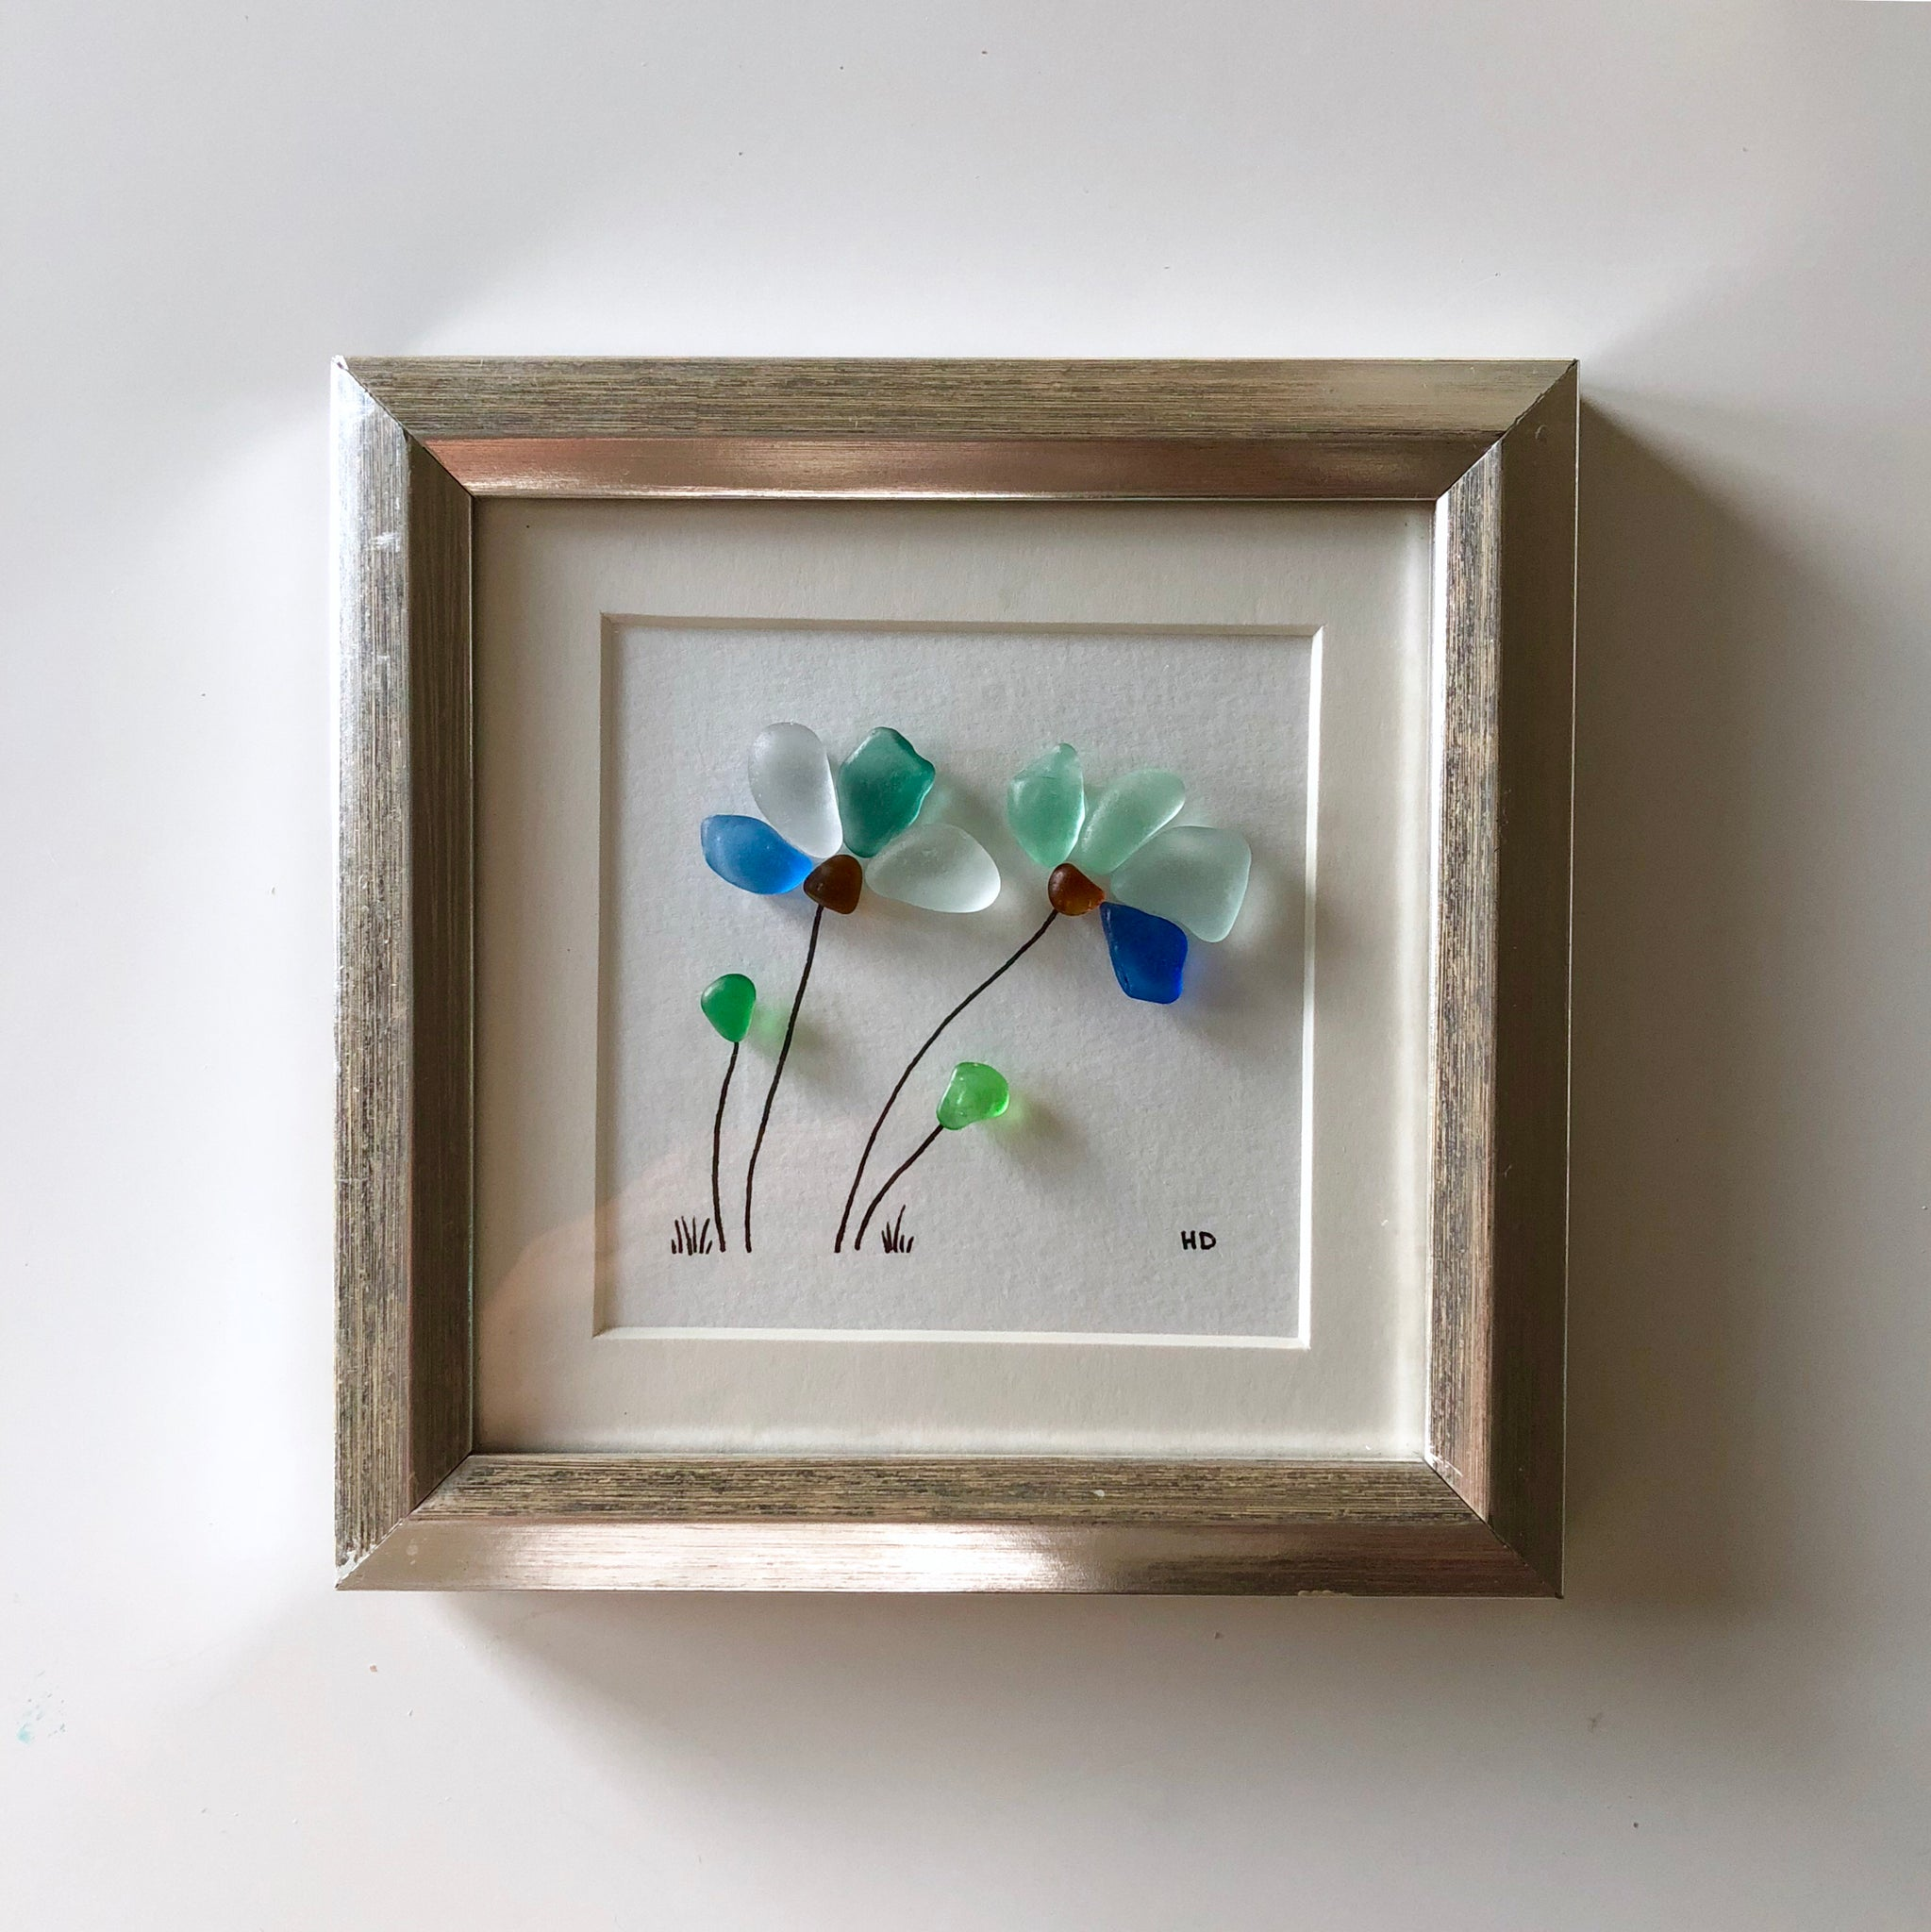 Petals In The Wind - 5x5 Framed Seaglass Art